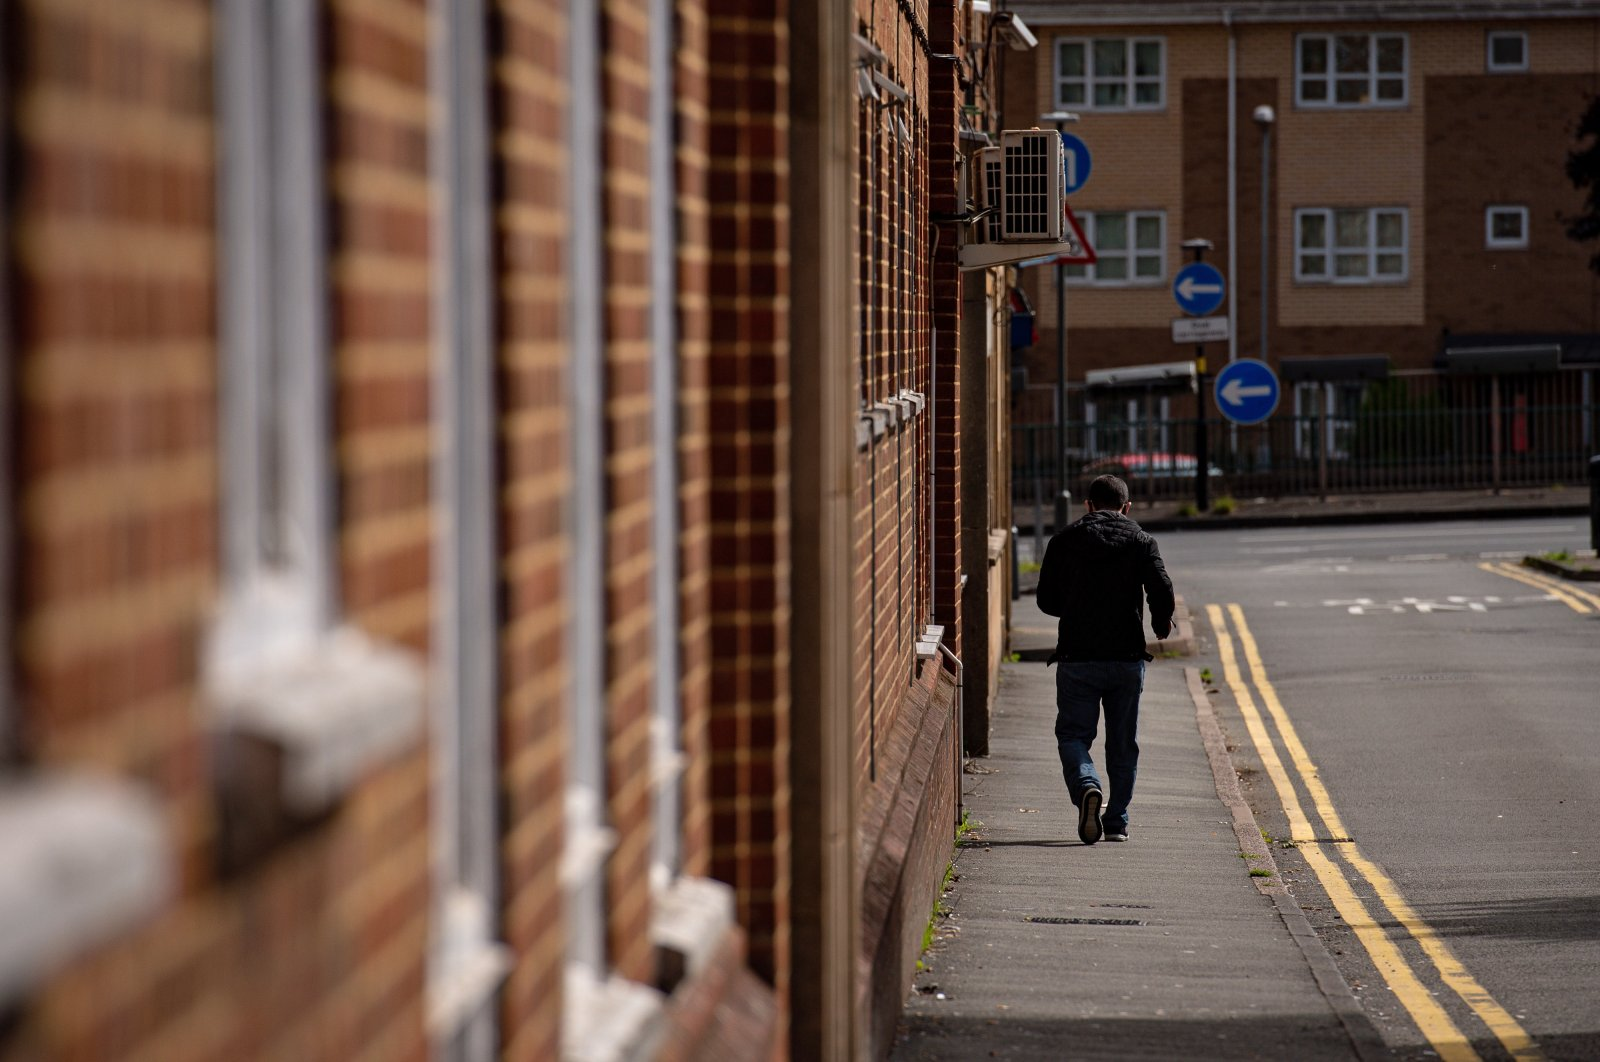 A man walks past The Stone Road hostel in Edgbaston, which has been closed following an outbreak of the coronavirus, Birmingham, Sept. 5, 2020. (Reuters Photo)